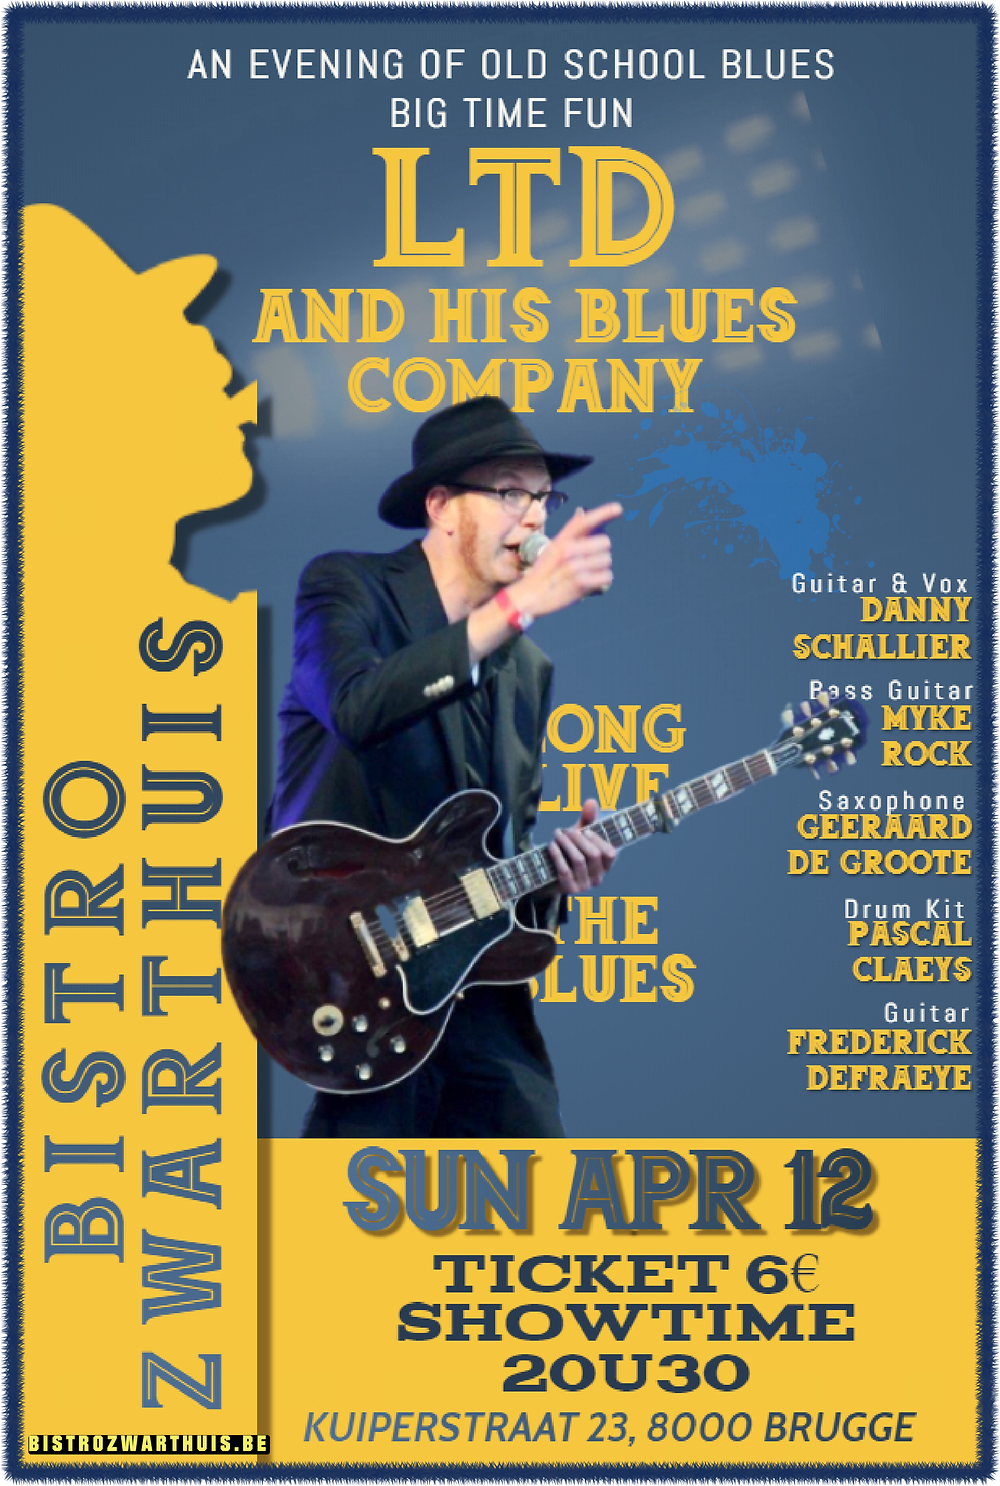 LTD & His Blues Company at Bistro Zwarthuis in Brugge Sunday April 12, 2020